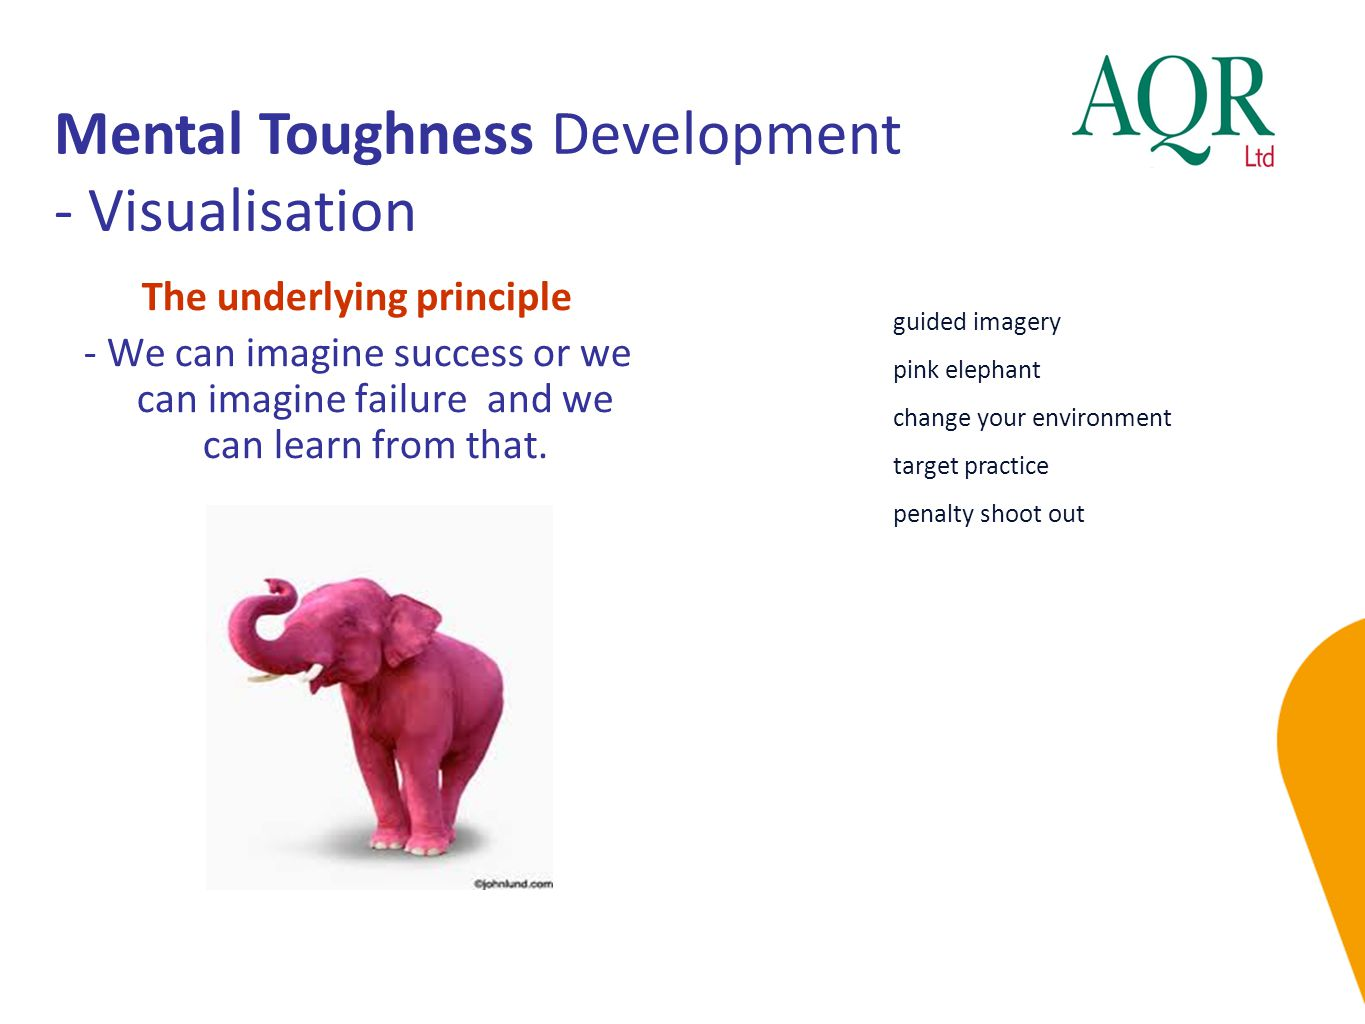 Mental Toughness Development - Visualisation guided imagery pink elephant change your environment target practice penalty shoot out The underlying principle - We can imagine success or we can imagine failure and we can learn from that.